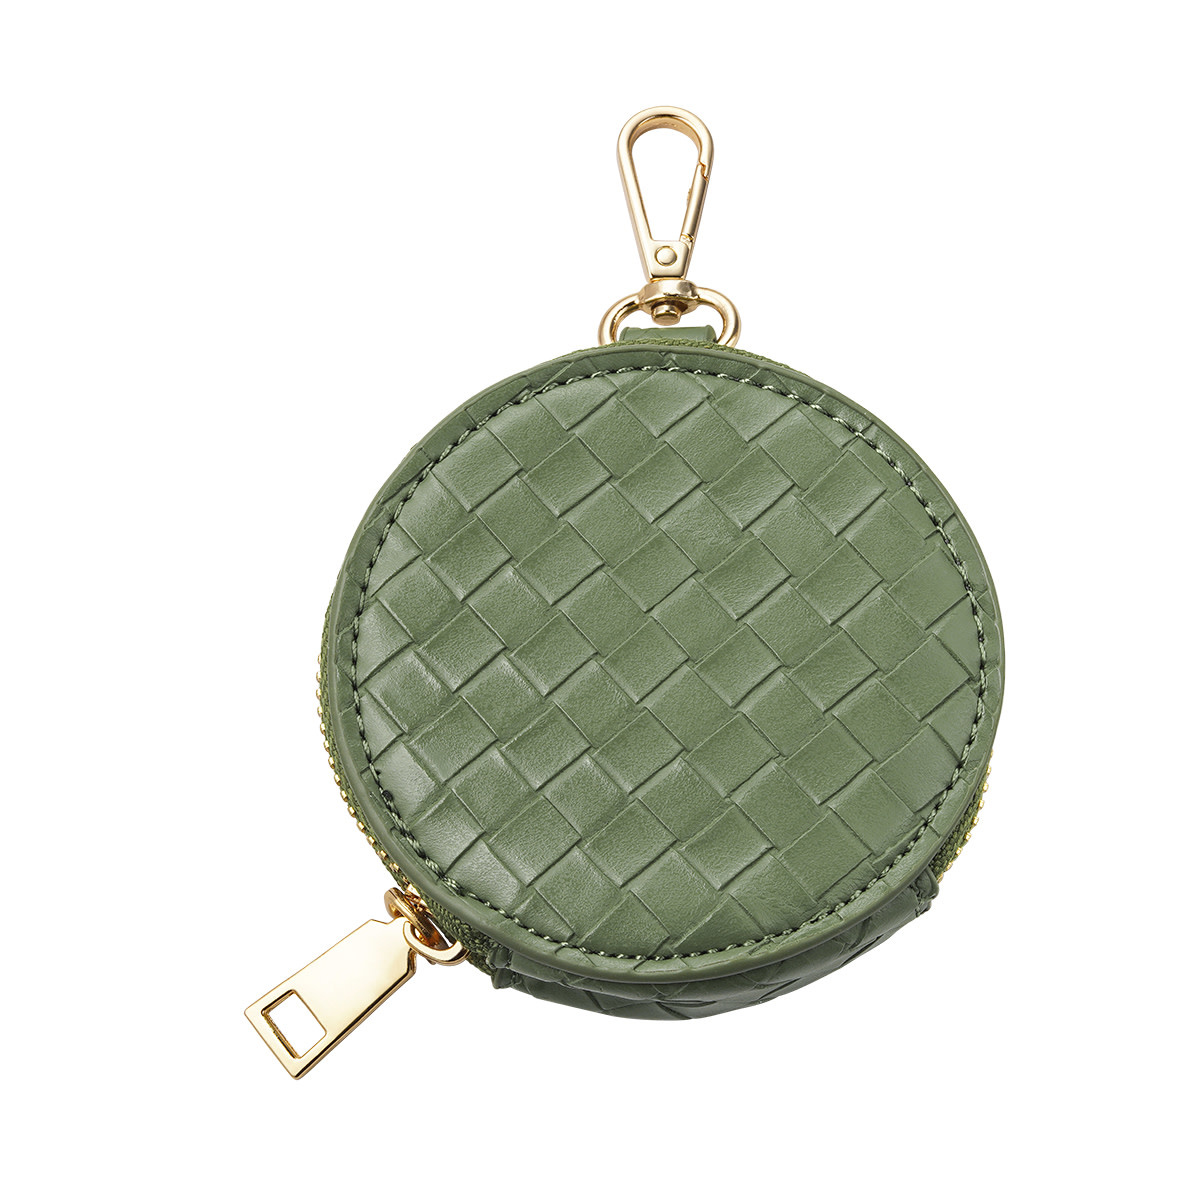 With love Braided pouch - green 9 x 2 cm